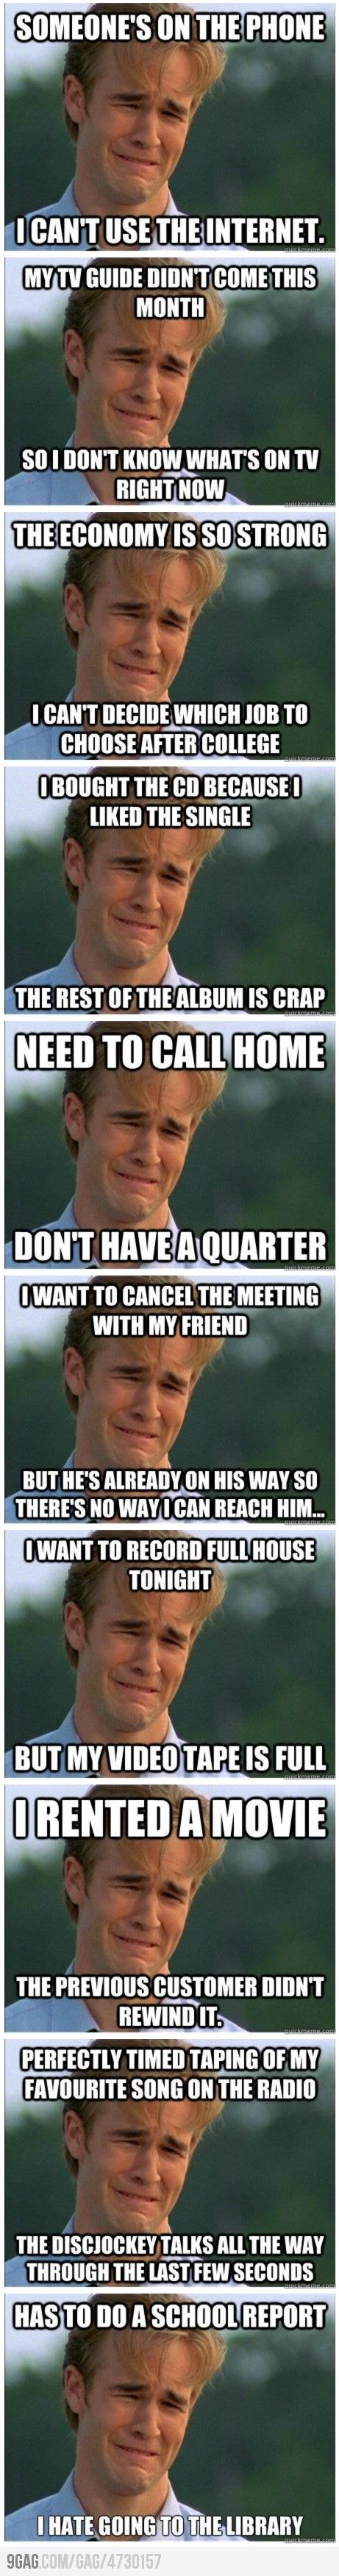 90's problems. These are hilarious!